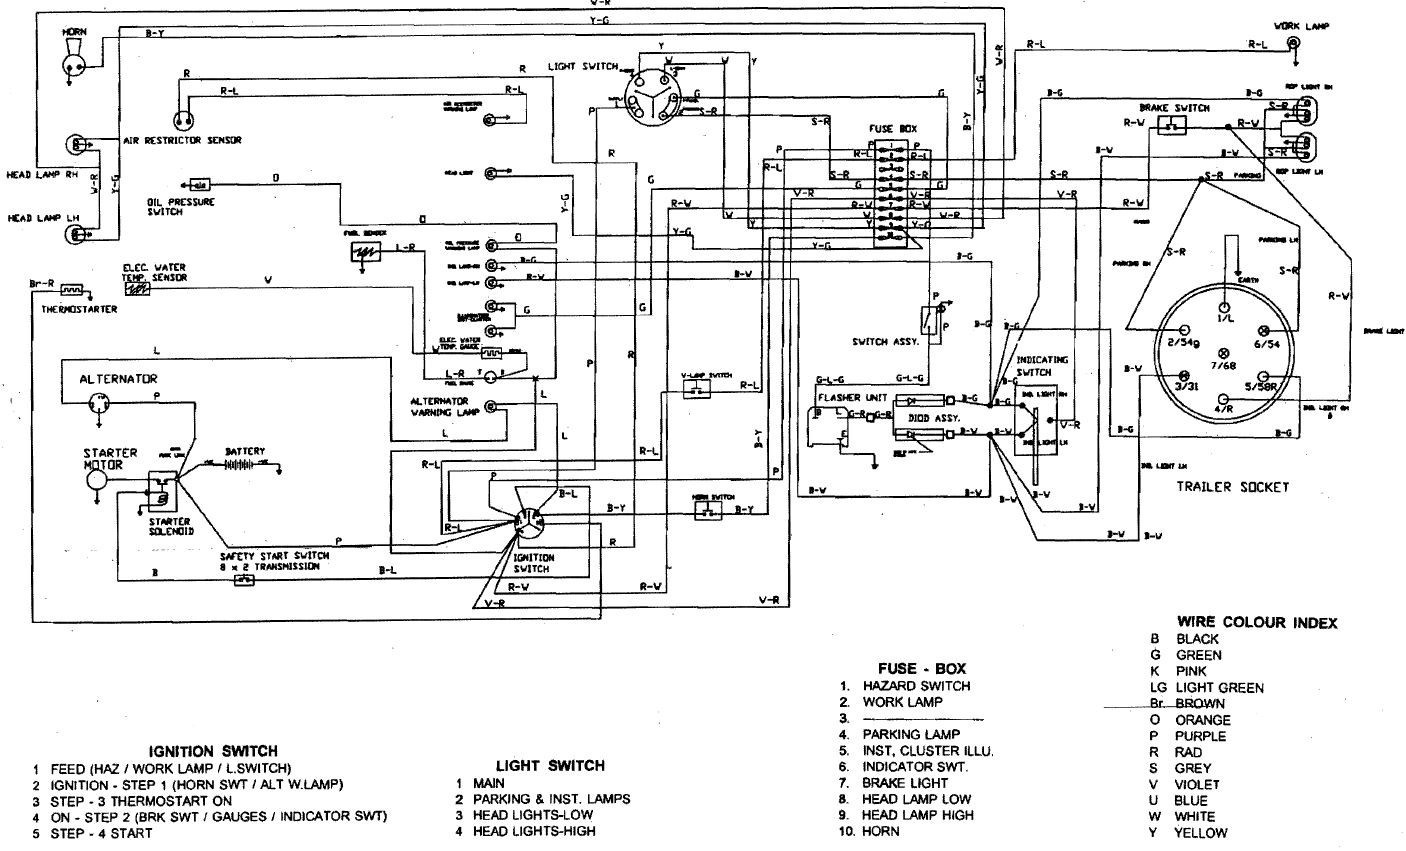 hight resolution of ford 1220 tractor wiring 9 classroomleader co u2022l175 kubota tractor wiring diagram wiring diagram rh